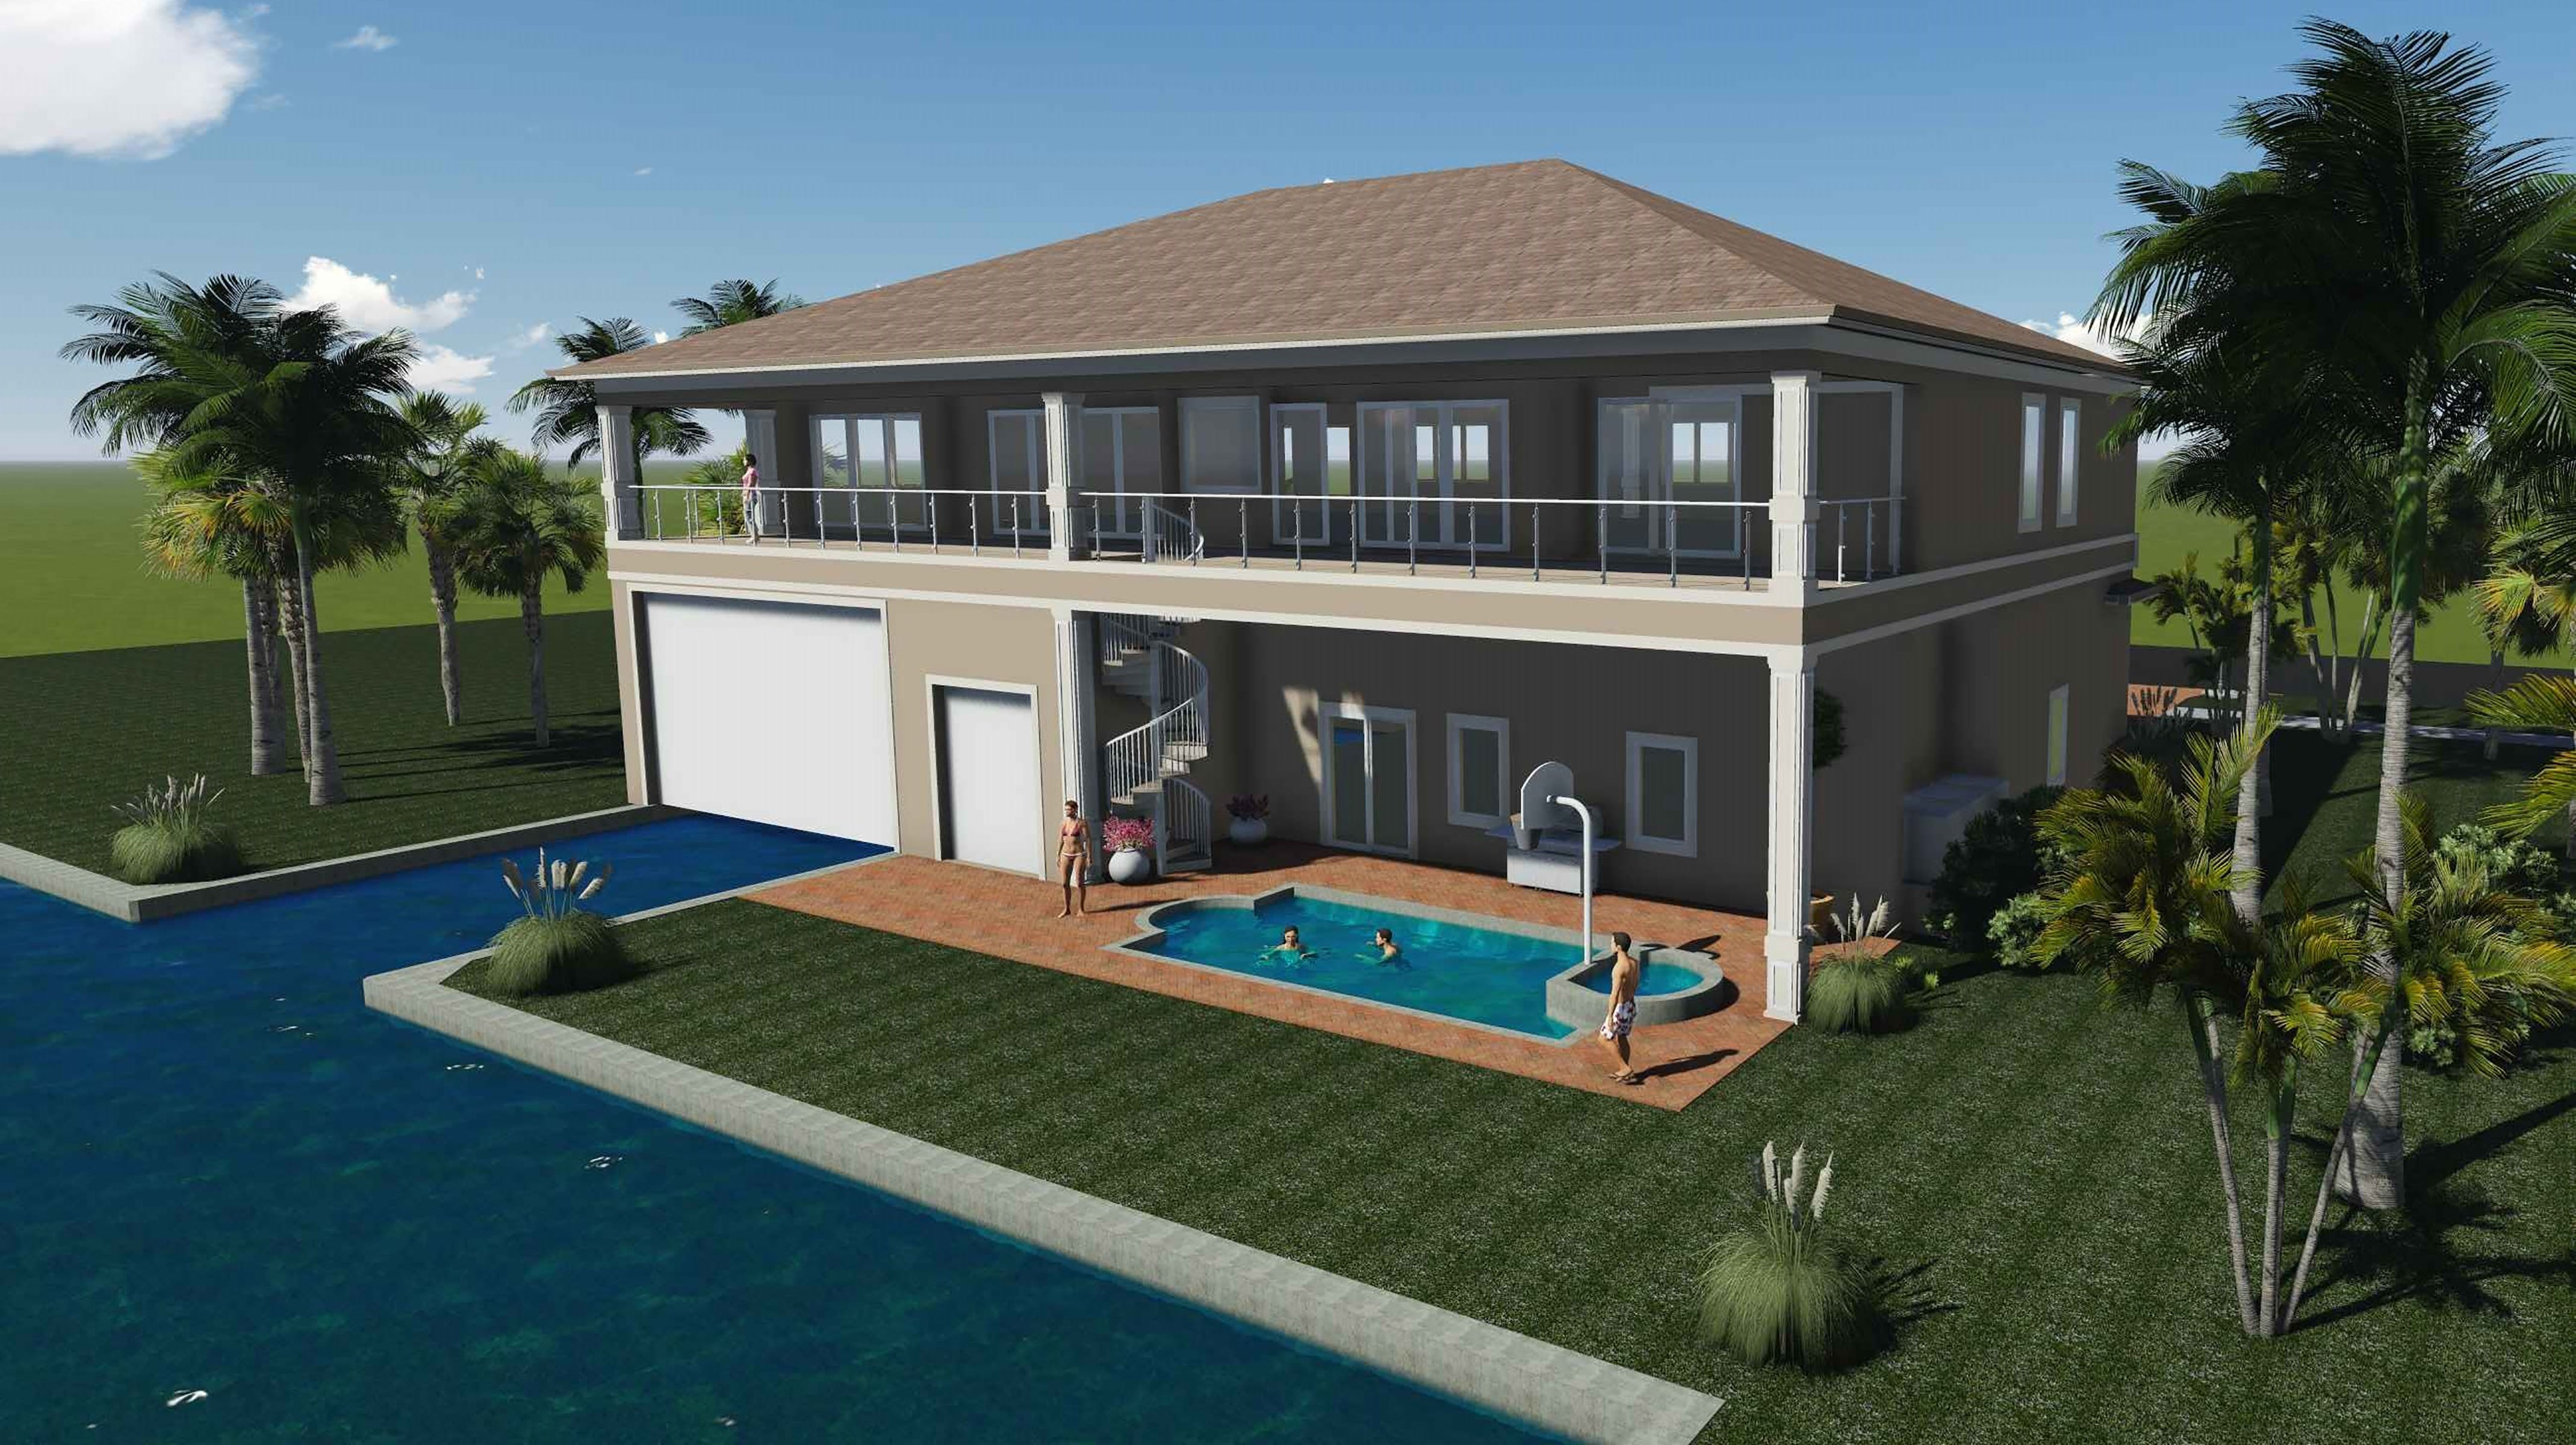 An Artistu0027s Rendering Shows The Completed Orange Ct. Home With Boat Slip Overhead  Doors Lowered. (Photo: Image Provided)